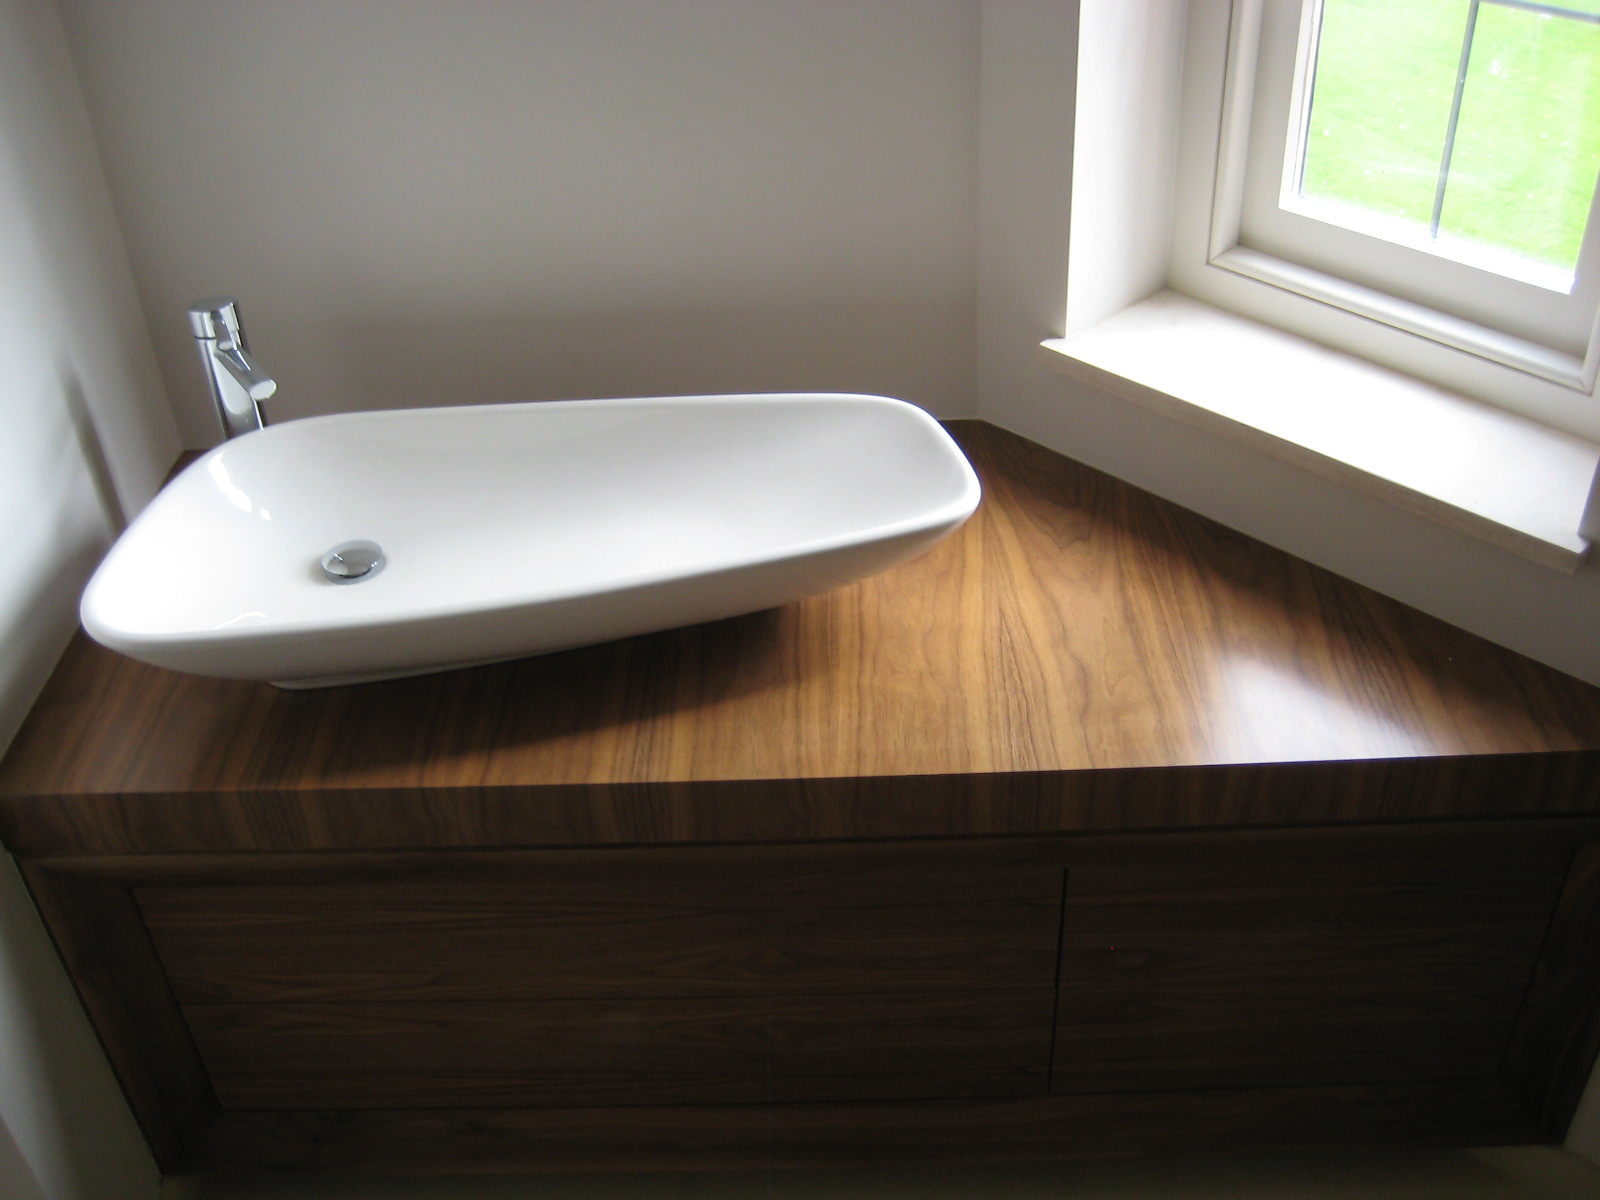 15-bathroom-unit-with-white-basin-close-up